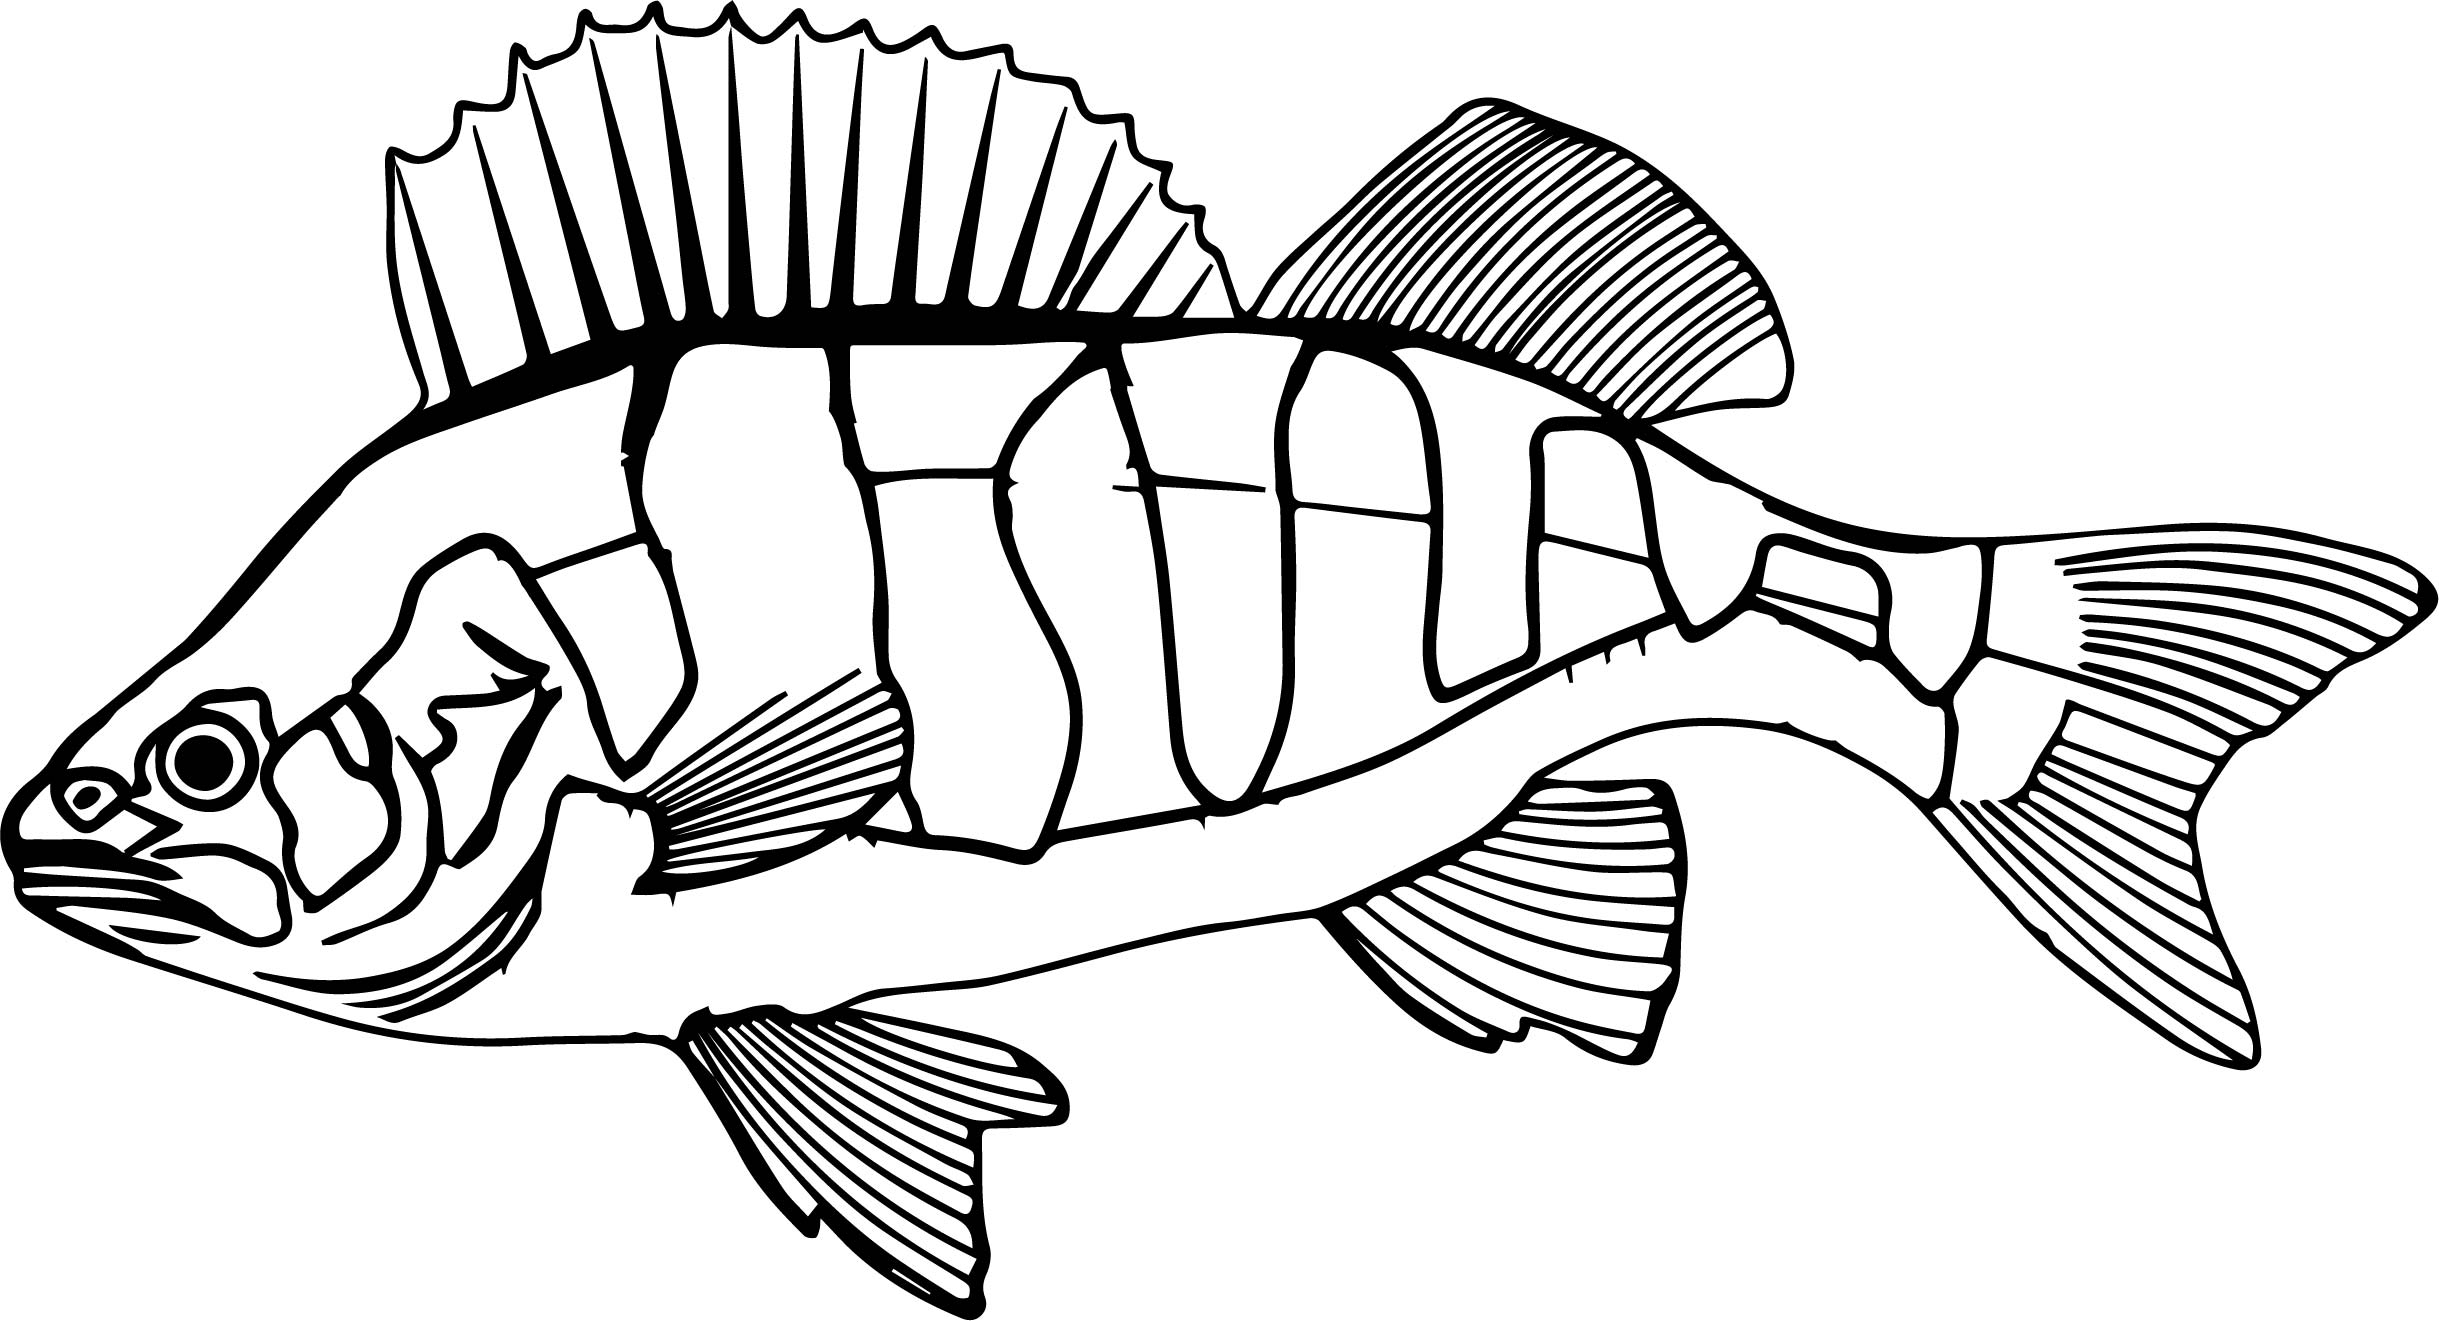 perch fish underwater submarine coloring page wecoloringpage